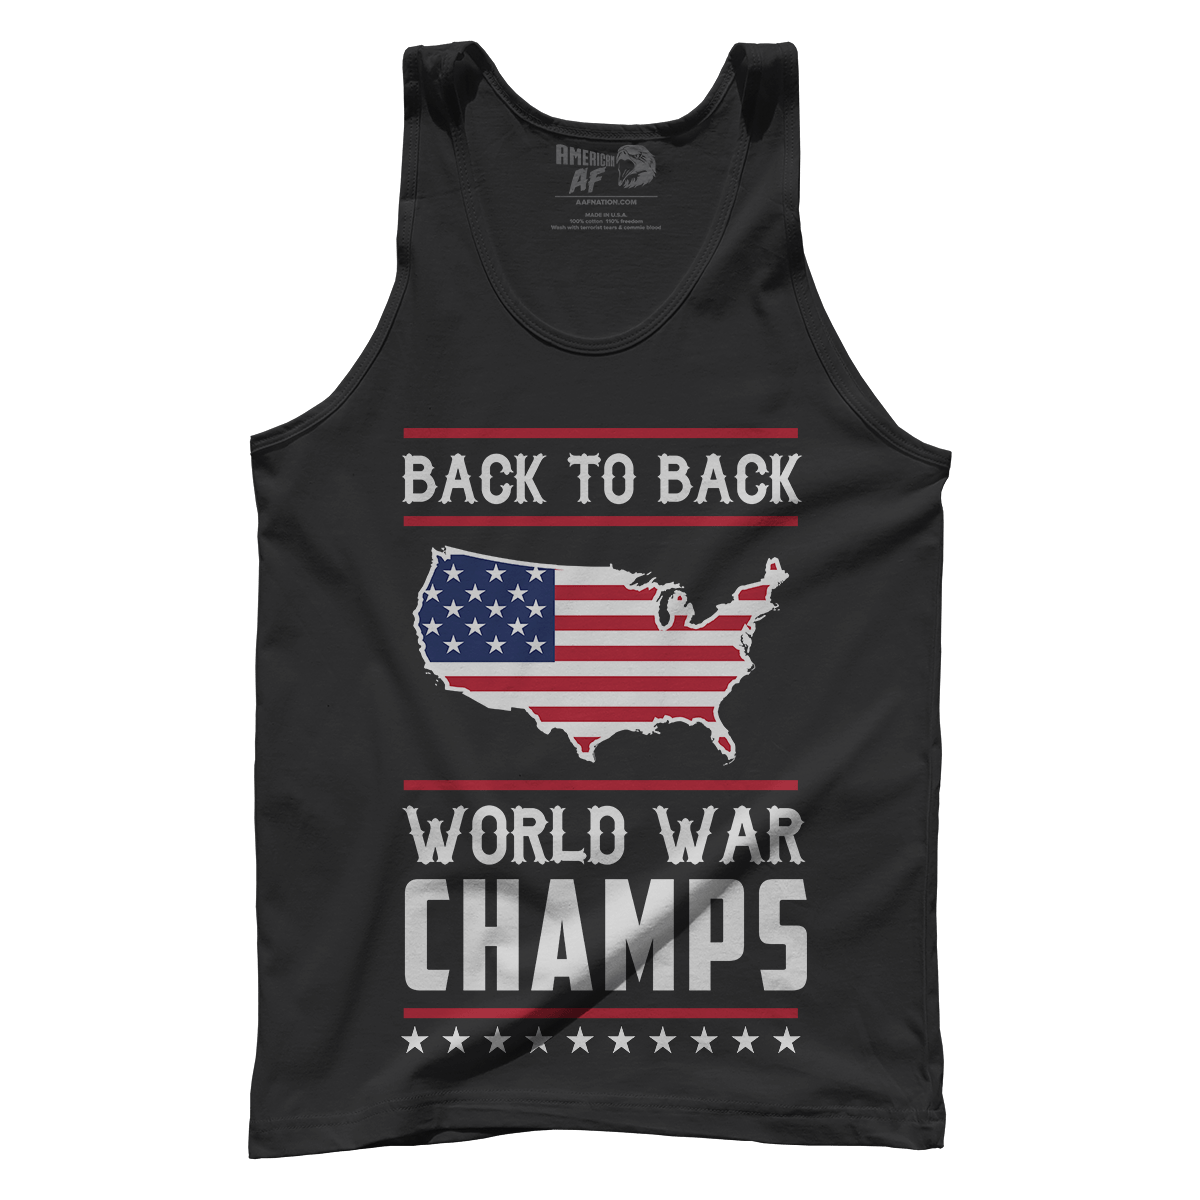 Back To Back World War Champs Champions USA Flag Men/'s Tank Top S-3XL NAVY